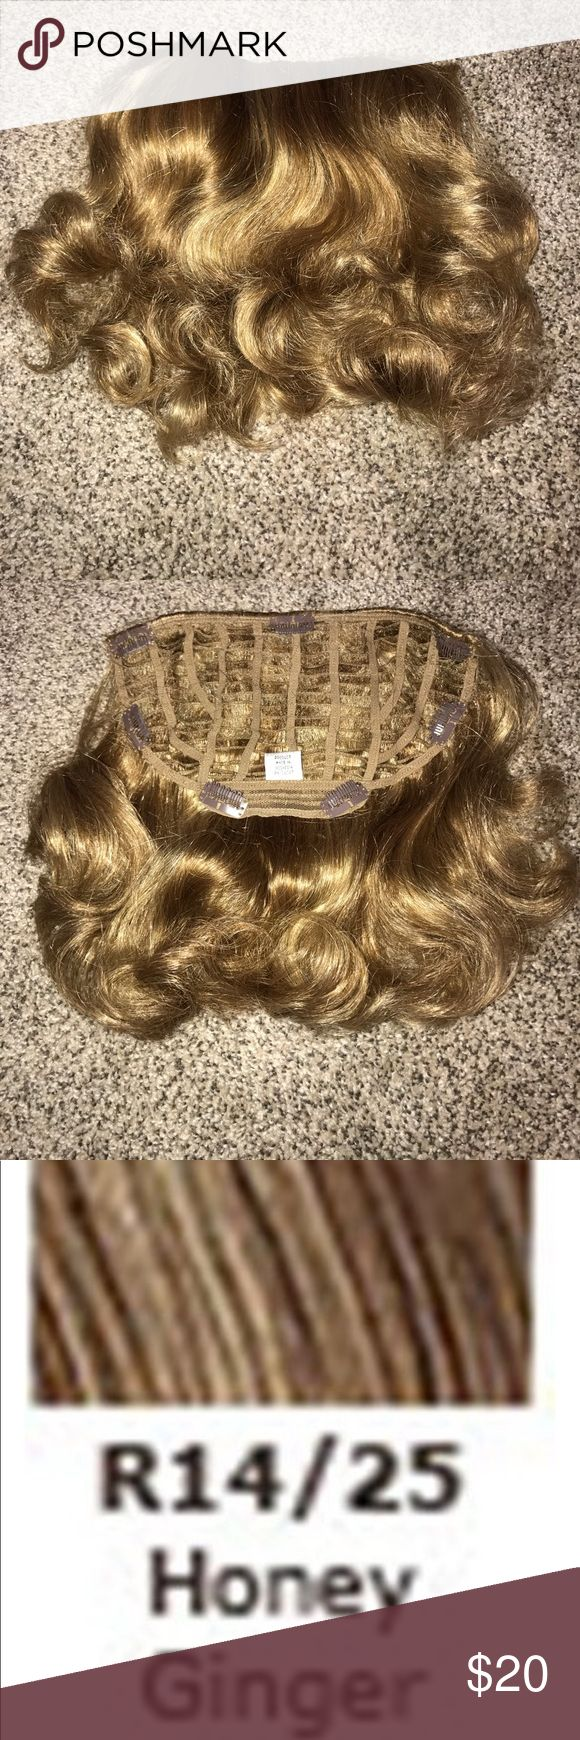 "Jessica Simpson Hairdo 15"" clip in wavy extension Jessica Simpson Hairdo 15"" clip in wavy extension. Honey Ginger. Adds tons of body to hair!  So easy to use!  Only used one time! EUC! Jessica Simpson Accessories Hair Accessories"